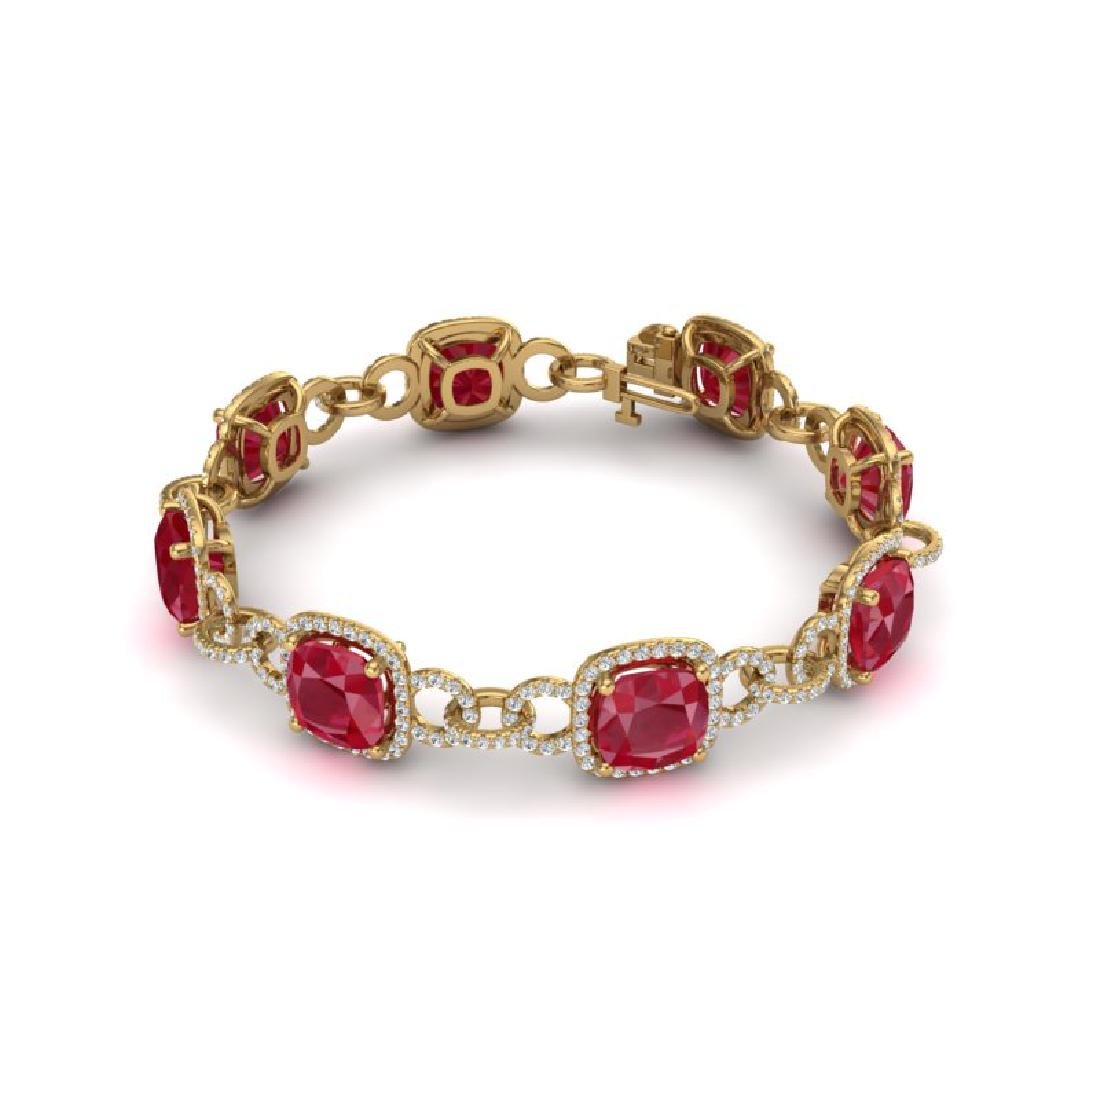 25 CTW Ruby & VS/SI Diamond Bracelet 14K Yellow Gold